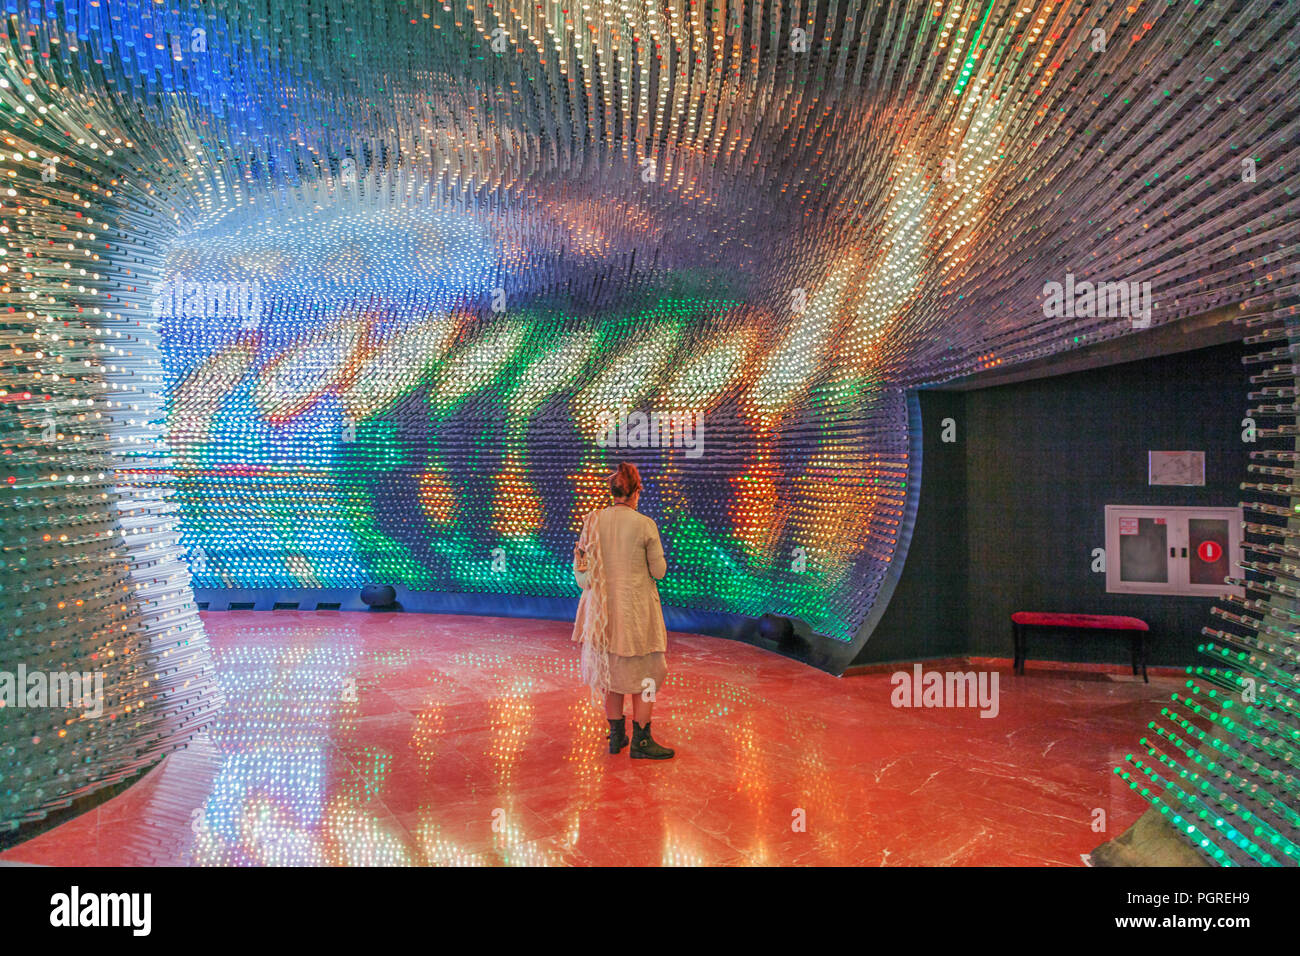 ASTANA, KAZAKHSTAN - JULY 6, 2016: LED pass to the Gold Hall in the National Museum of the Republic of Kazakhstan - Stock Image